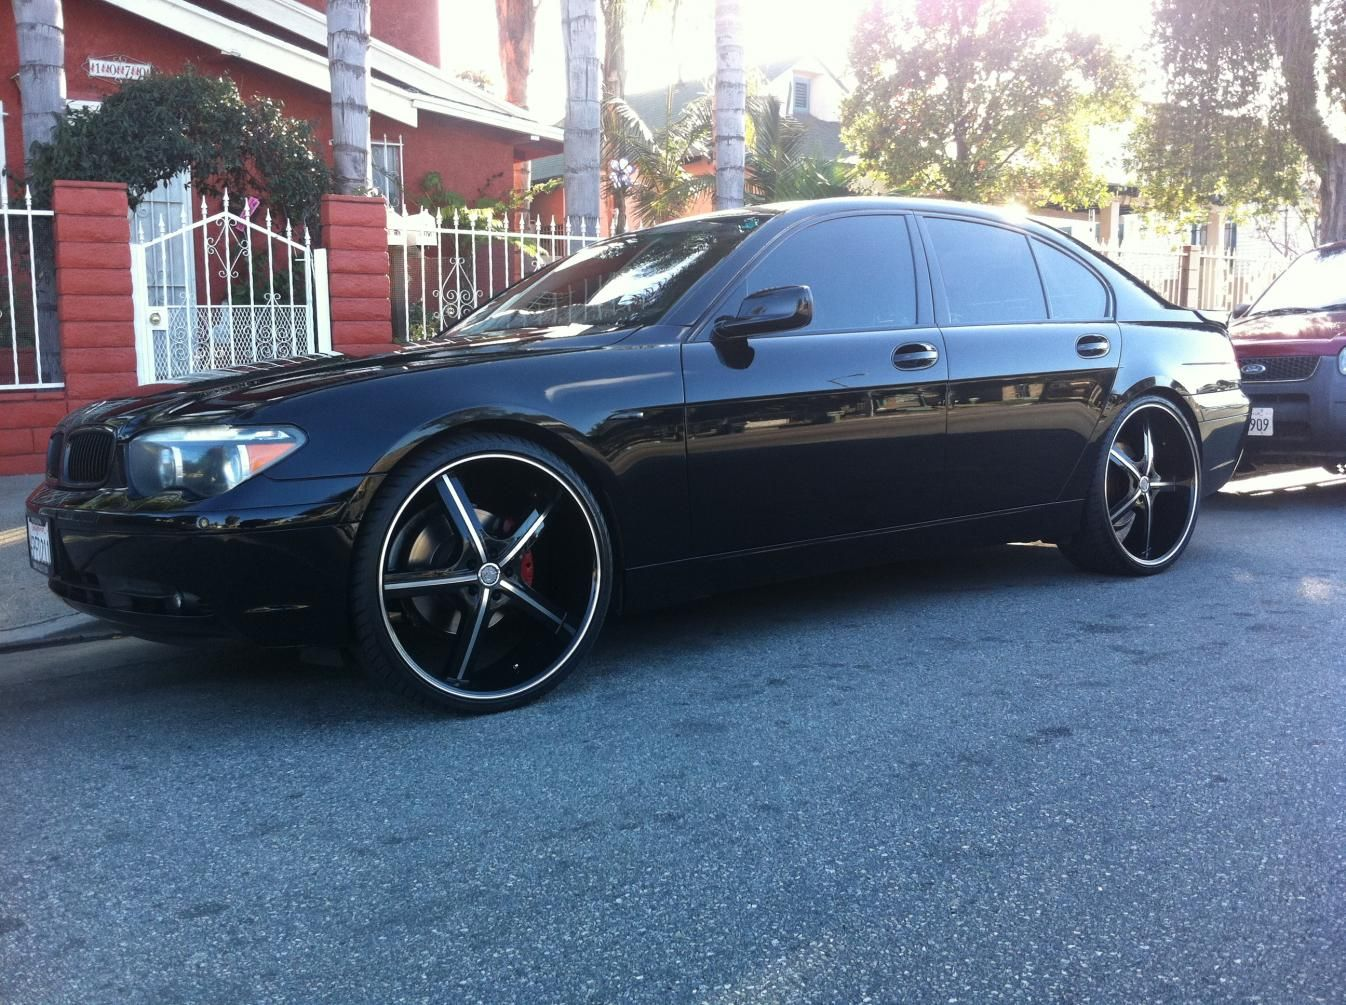 Bmw 745 On 24s 2004 745 24 Inch Rims Page 5 Bimmerfest Bmw